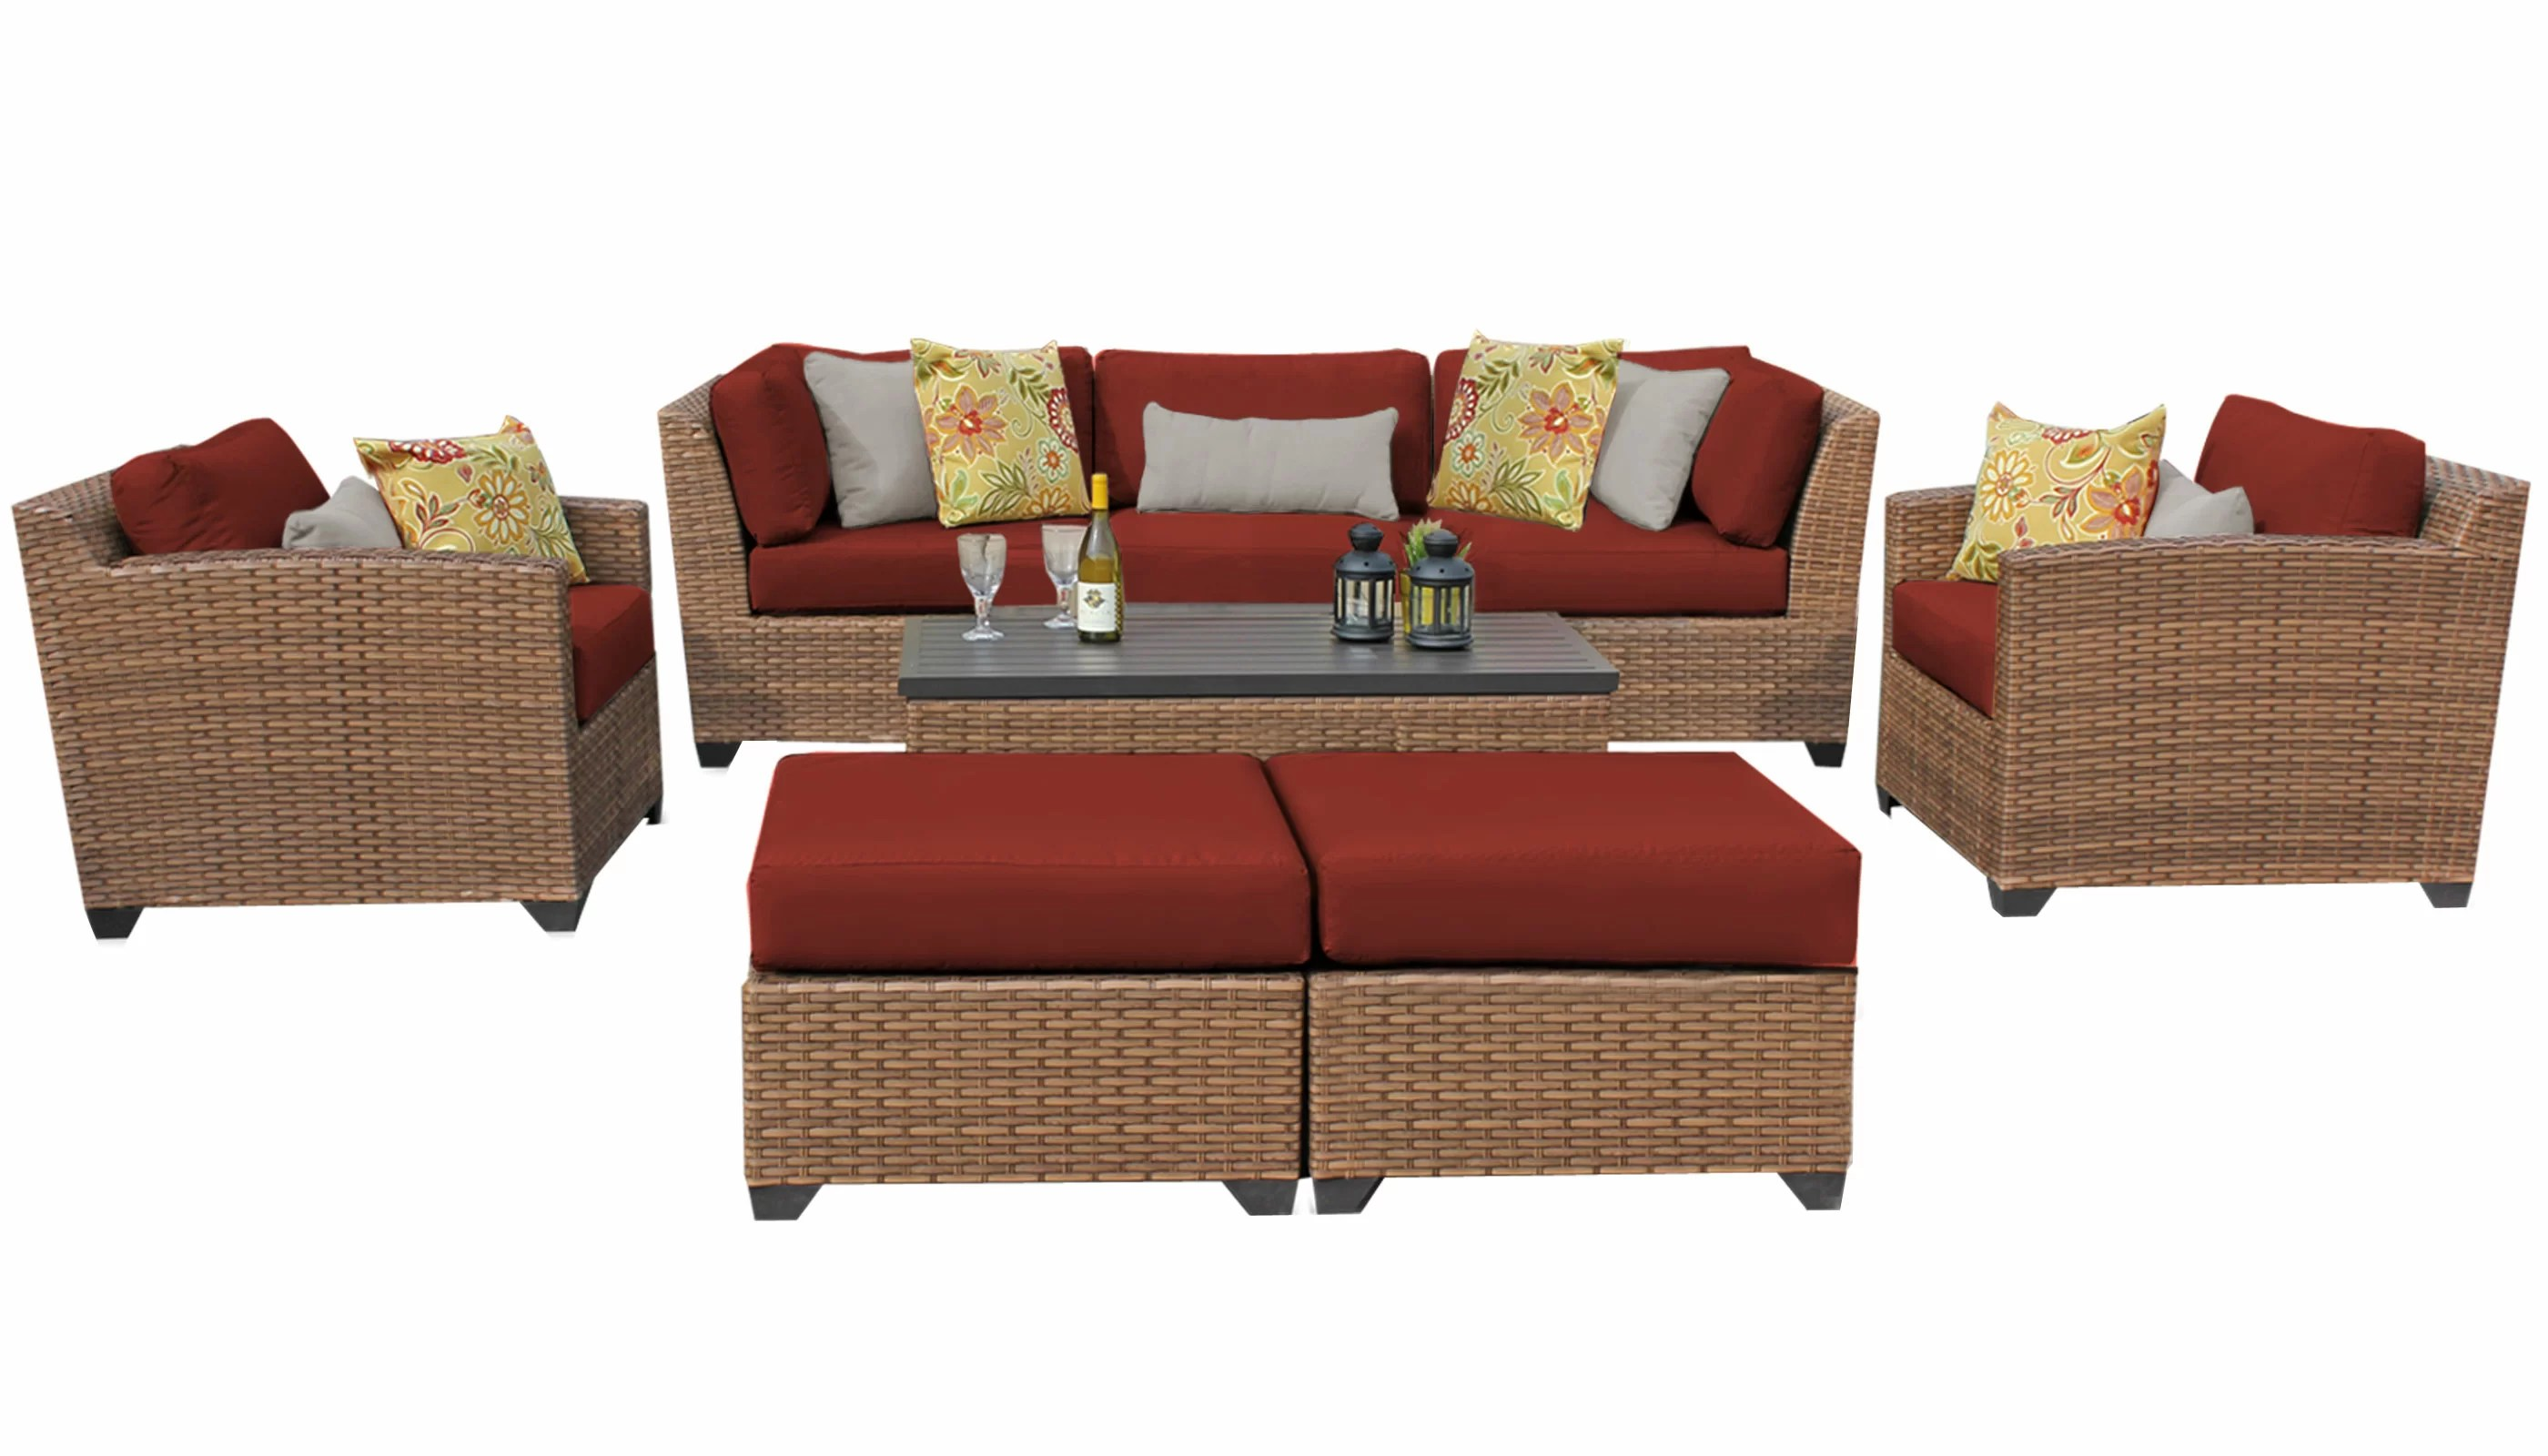 Sofa Rattan Waterbury 8 Piece Rattan Sofa Seating Group With Cushions